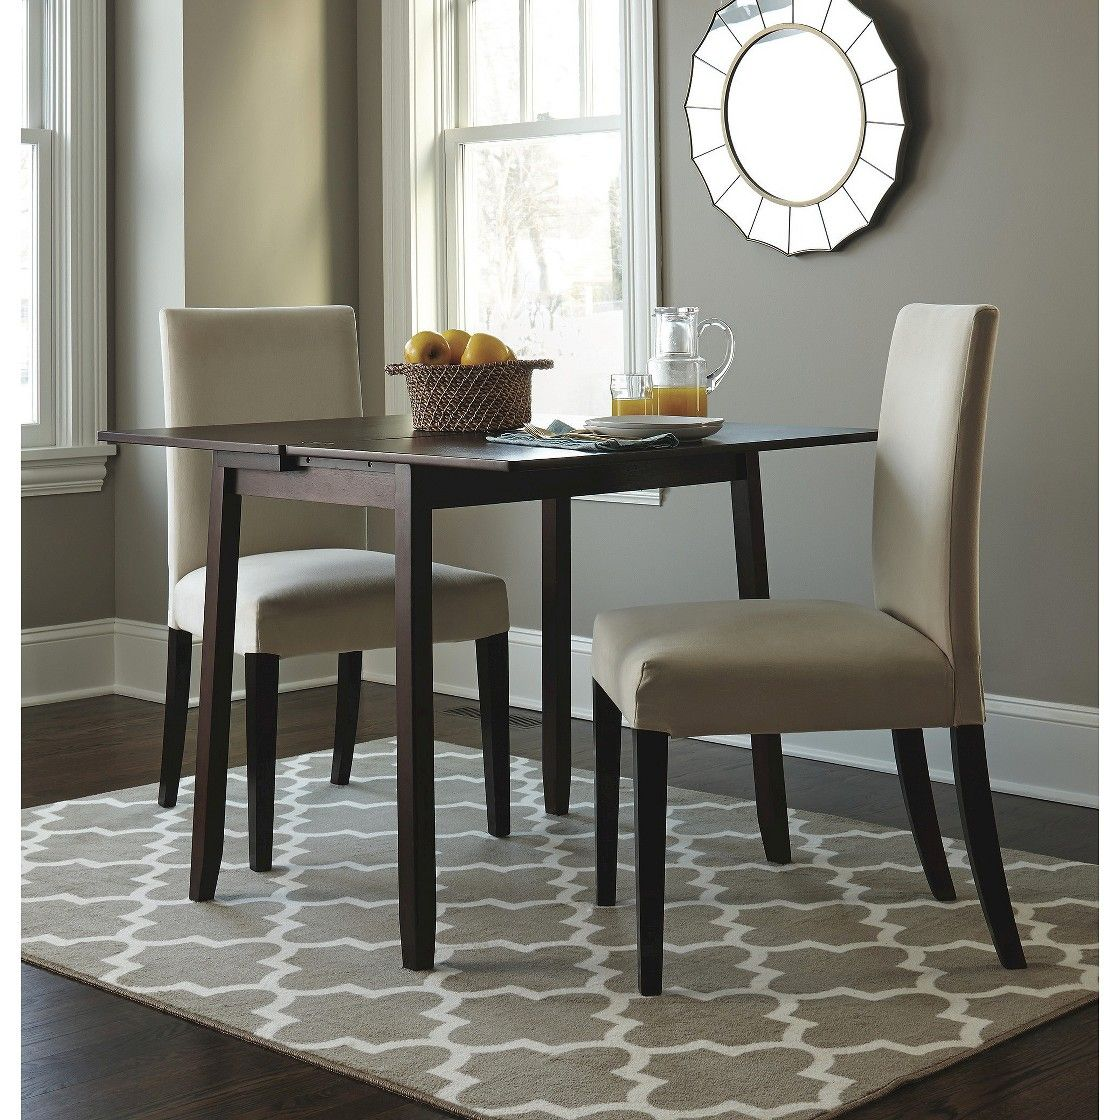 dining table with storage - threshold™ | table storage, storage and ps